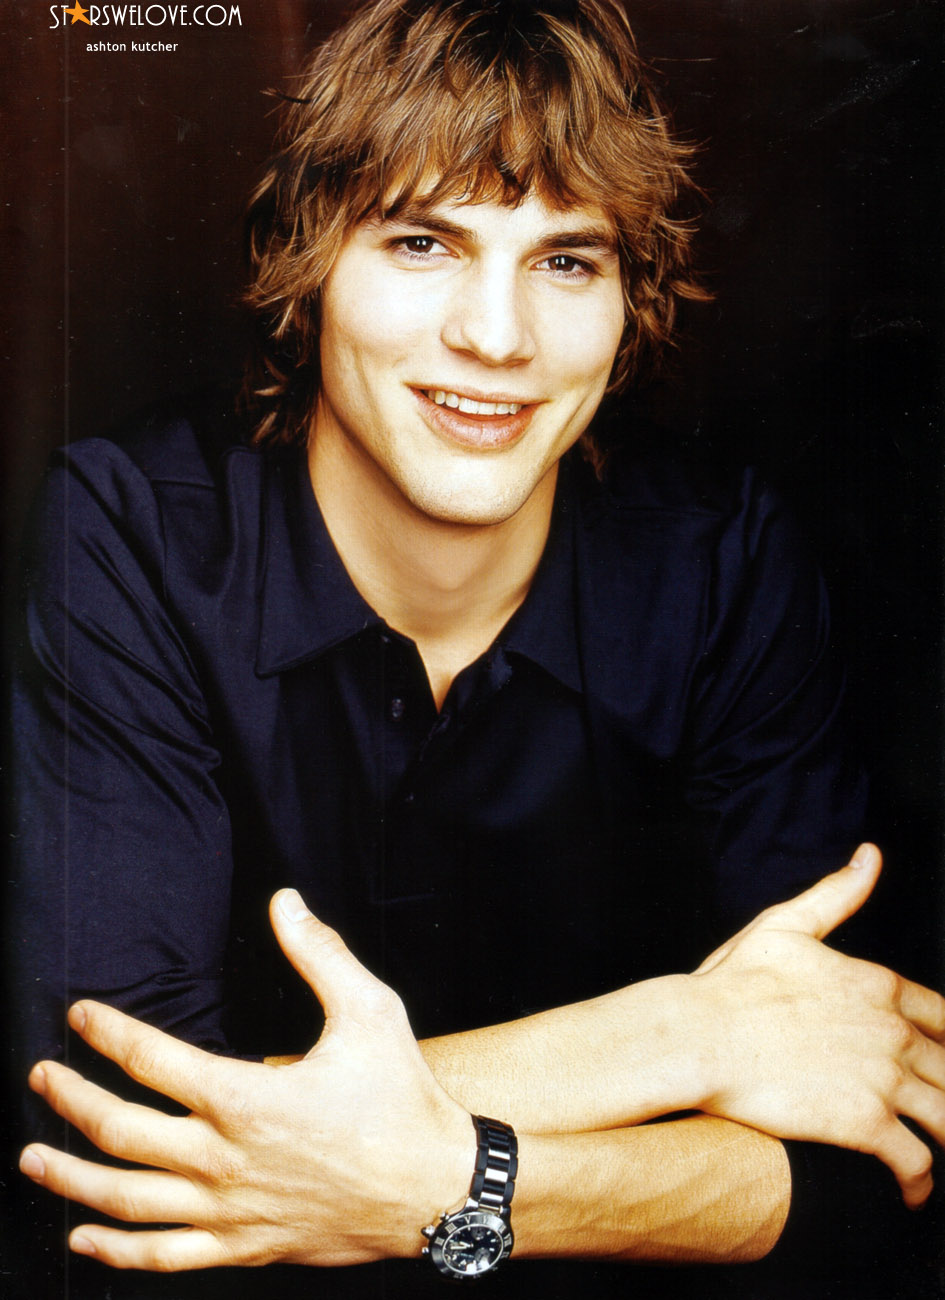 Ashton Kutcher photo (ashton_kutcher033, 945 x 1300 pixels, 228 kB)